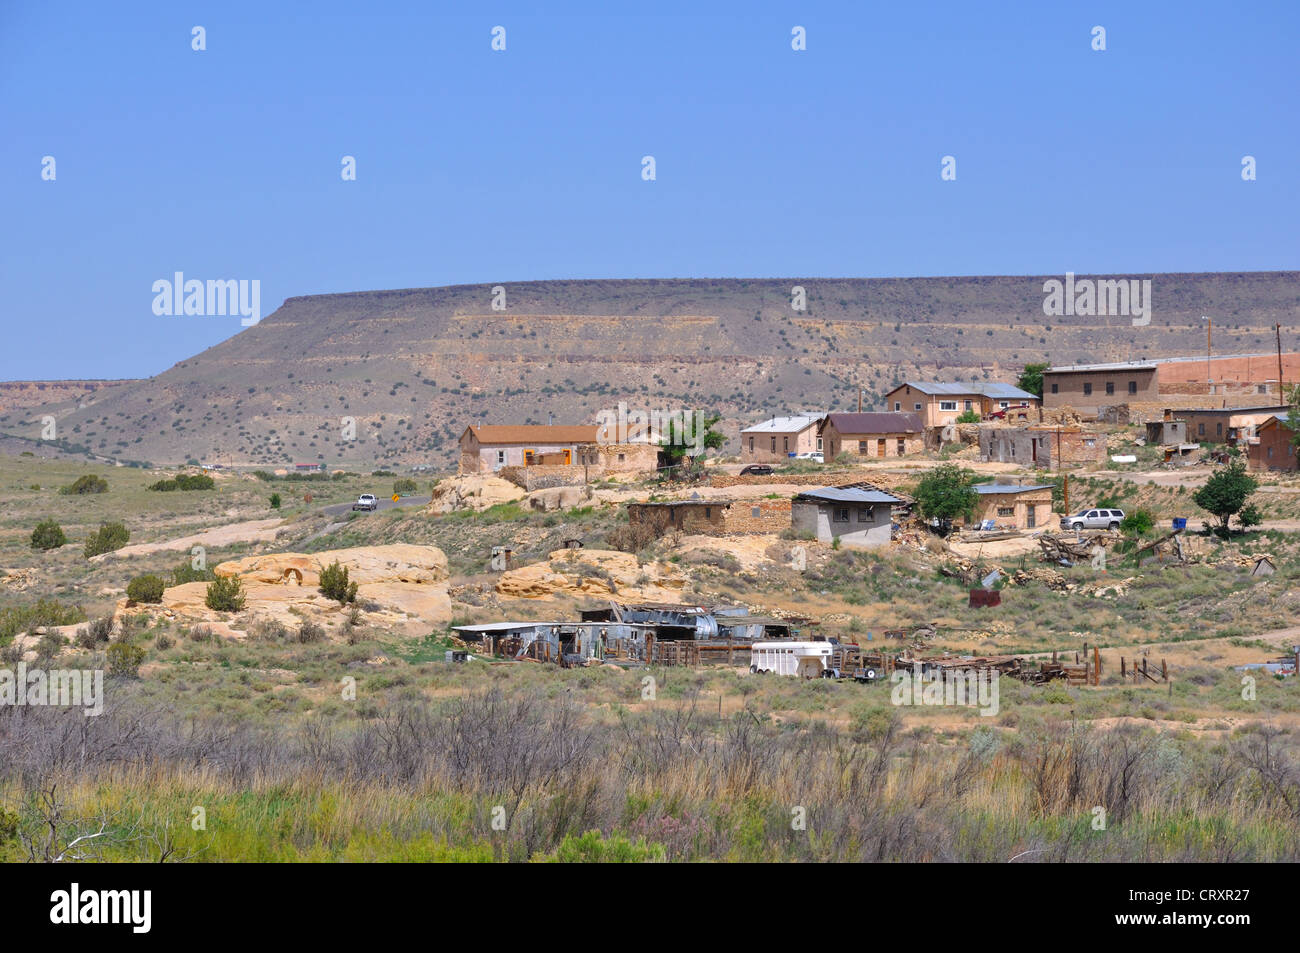 Houses In Native Indian Reservation New Mexico USA